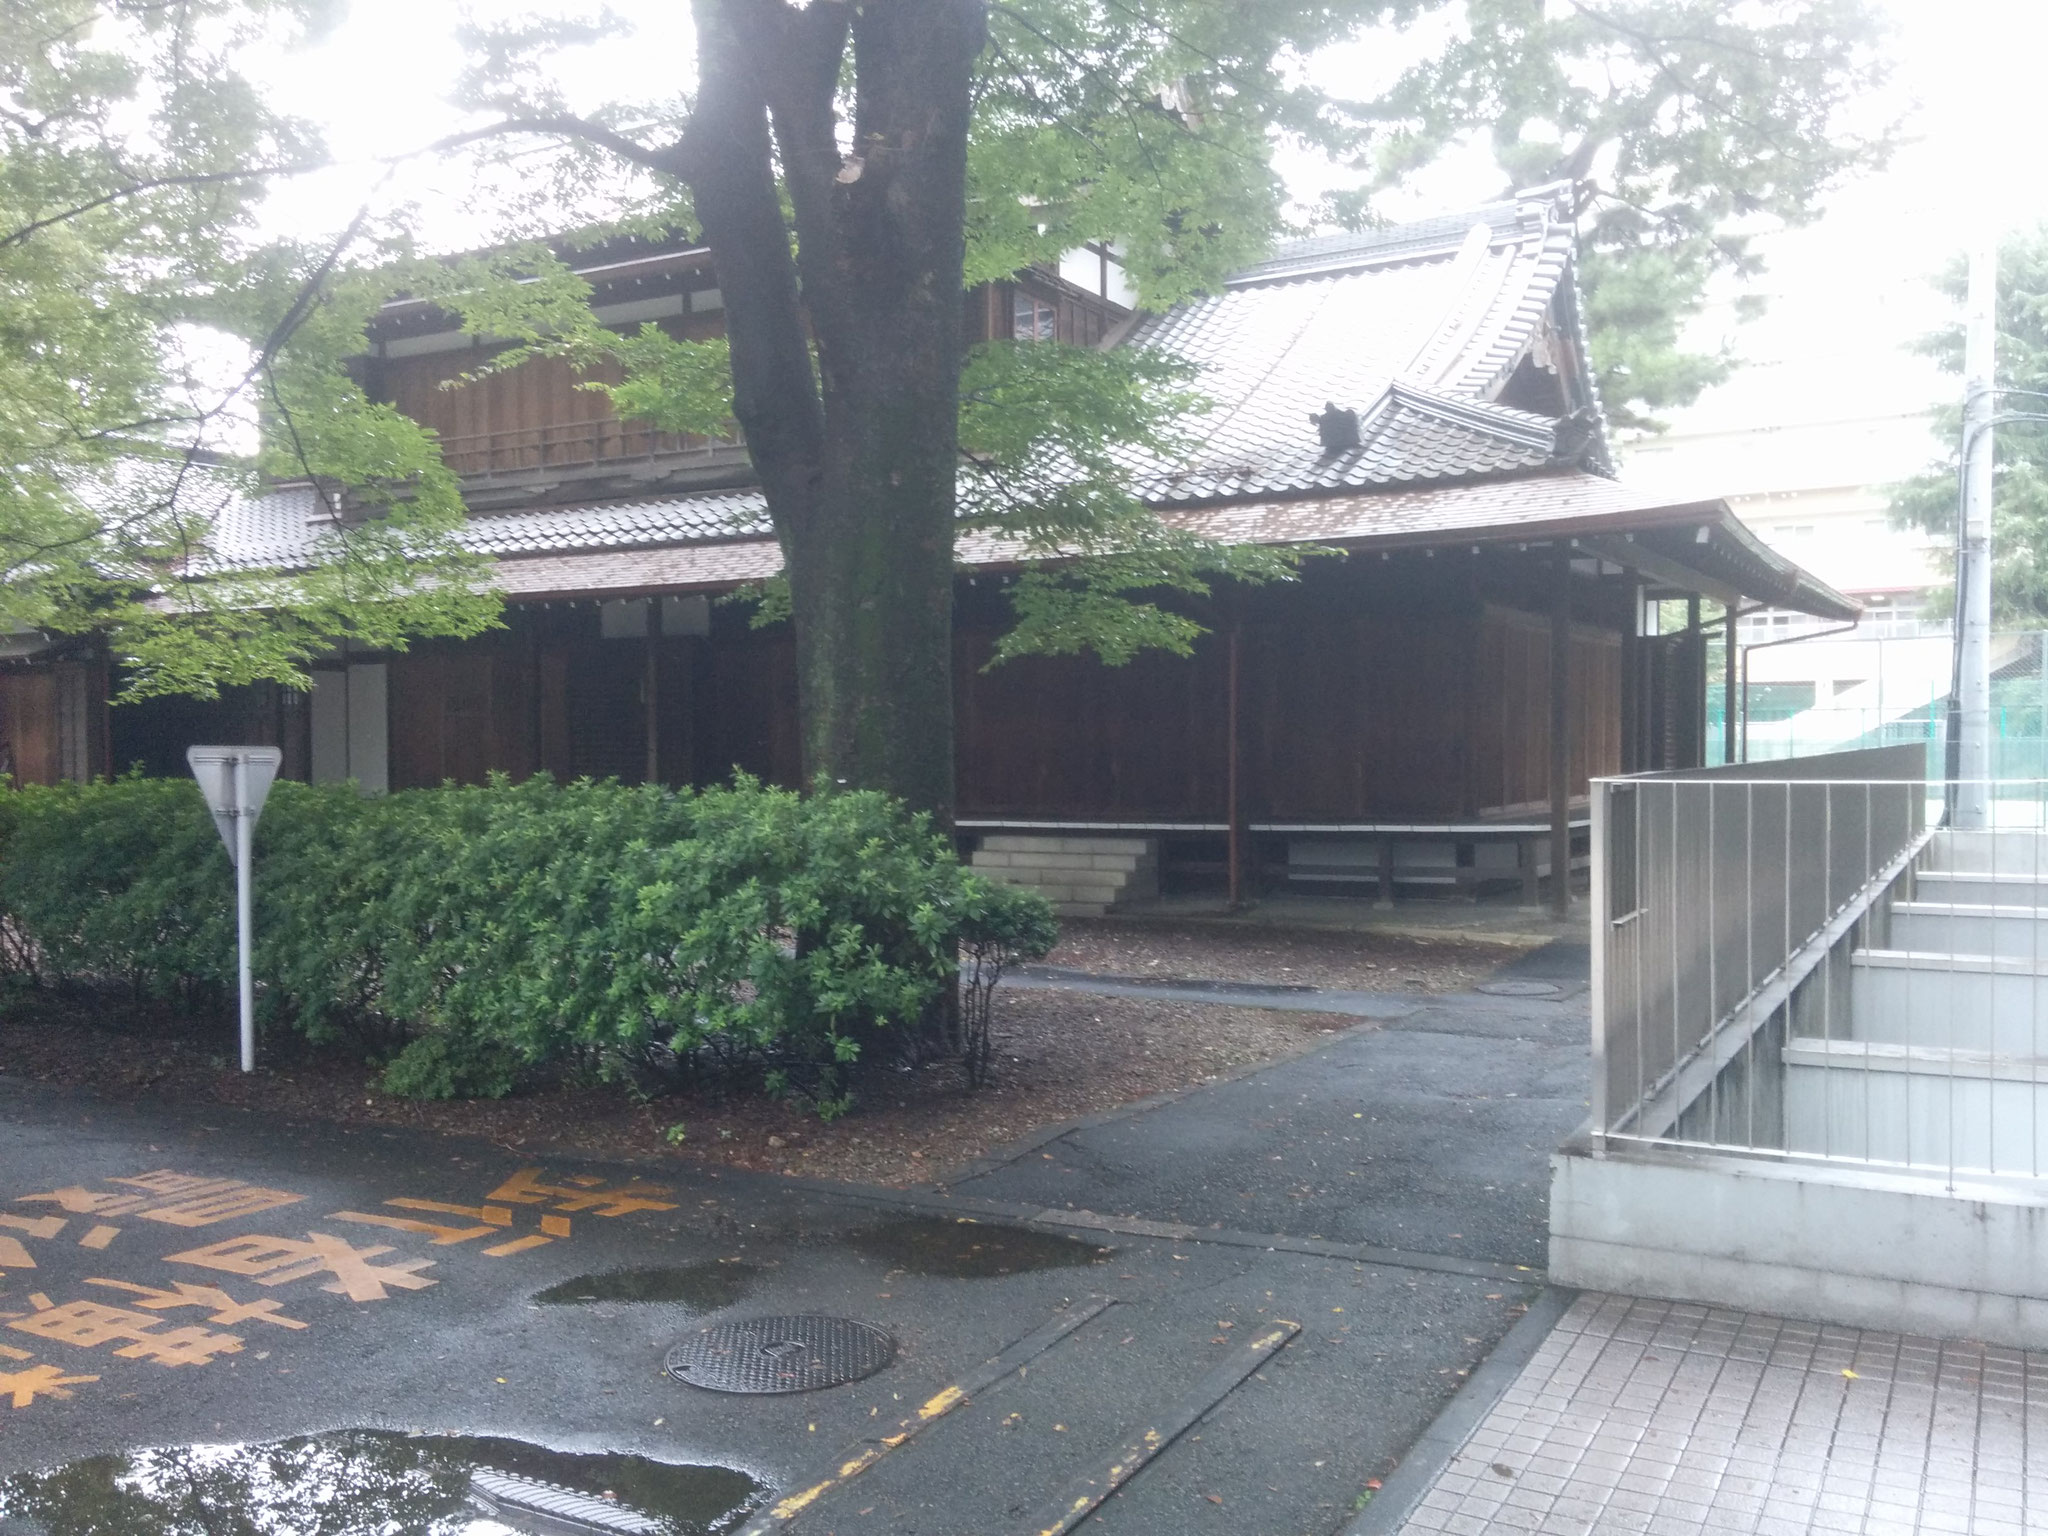 11 Hiroo - old buildings outside of the university building